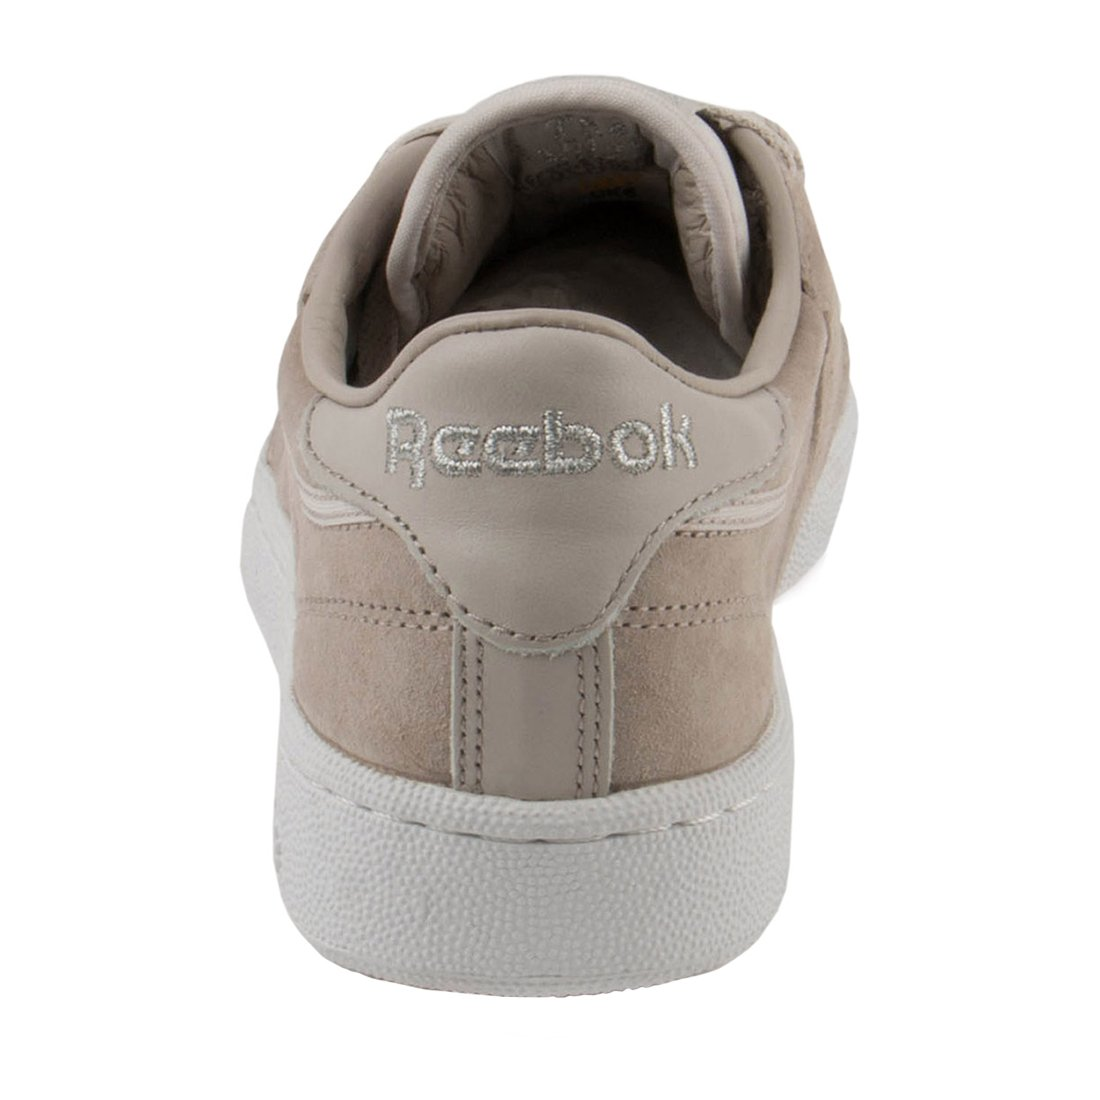 Reebok x United Arrows And Sons Men Club C 85 (tan